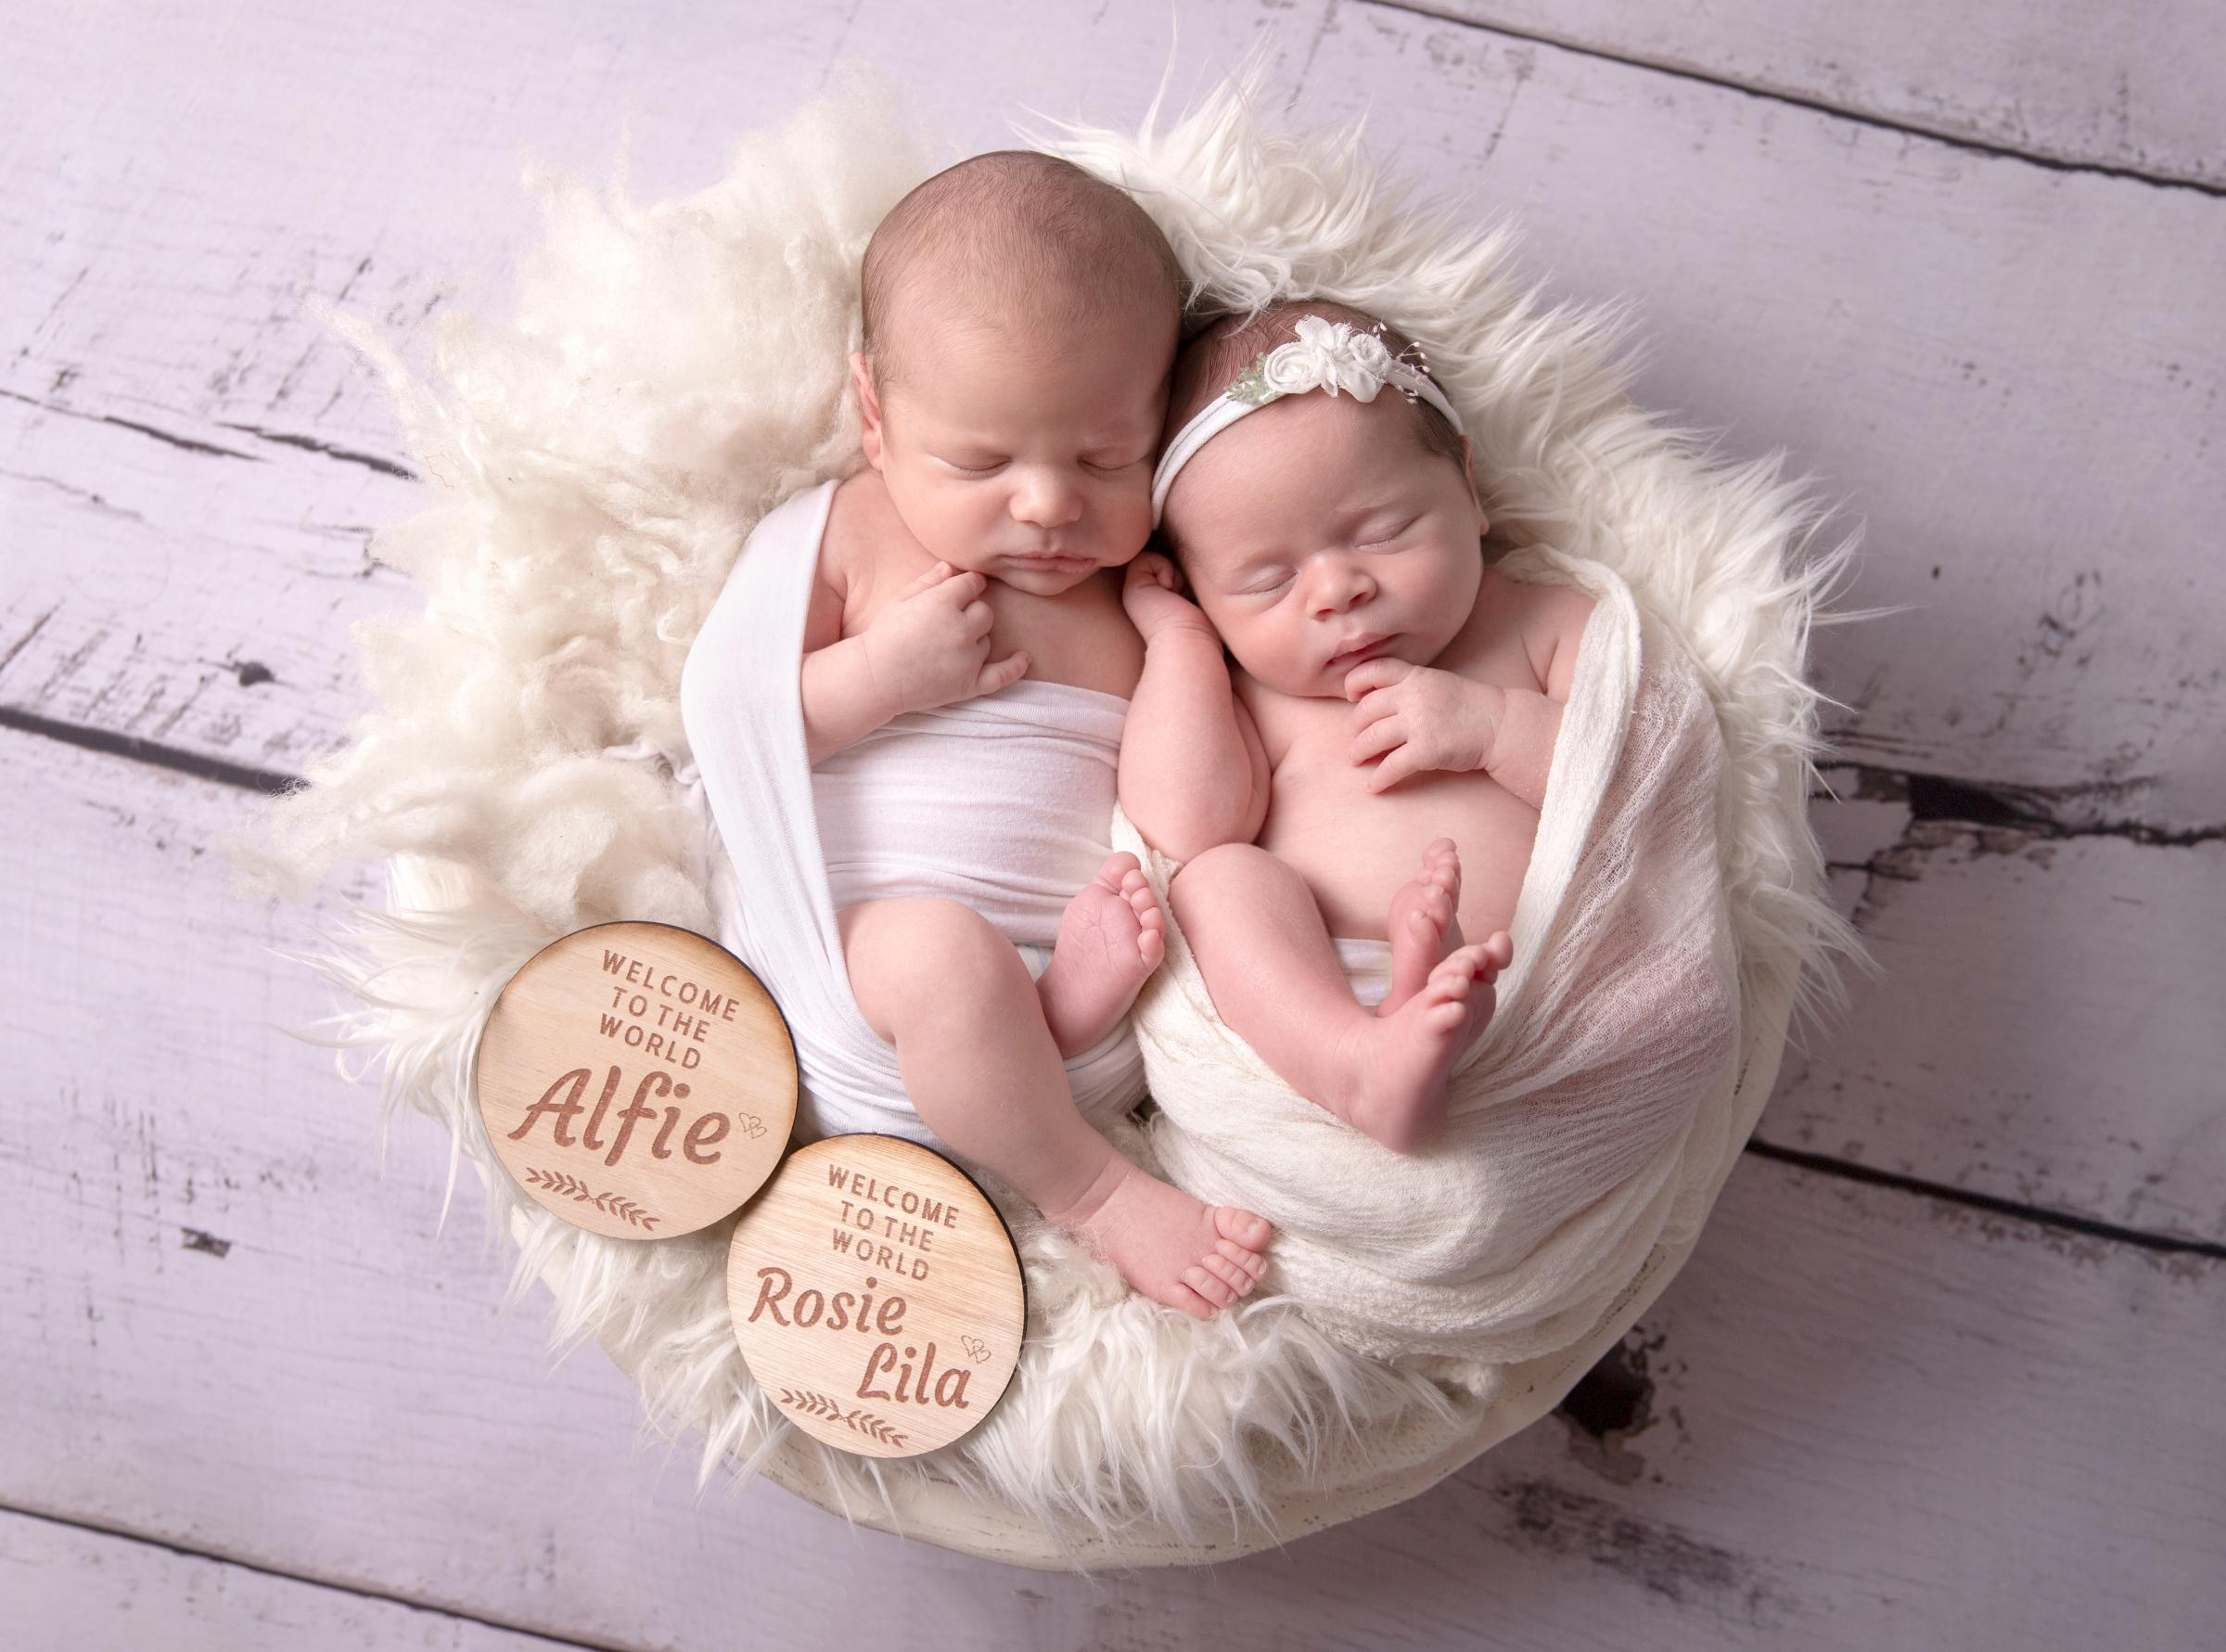 York Press: Twins Alfie and Rosie-Lila Carling were born on November 16  at York Hospital  at 36+6 , weighing 7lb 3oz and 7lb 4oz. Parents are  Daniel Carling and Rachael Parry of Holgate, York.